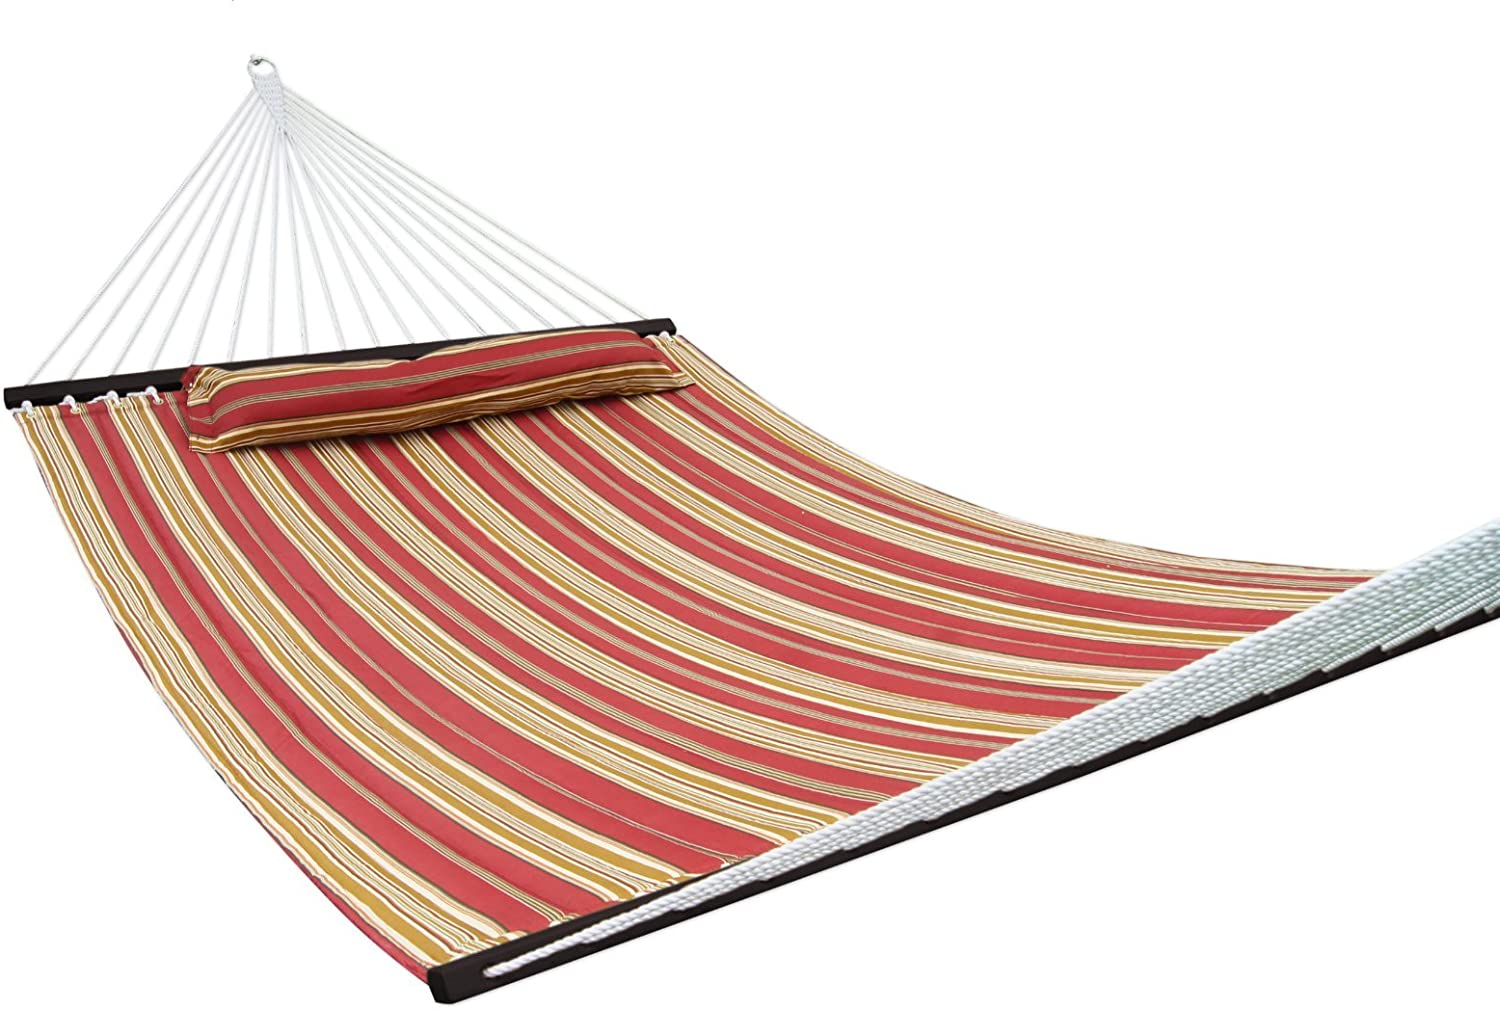 SueSport New Hammock Quilted Fabric Price reduction Double Pillow Size Super sale with Spre